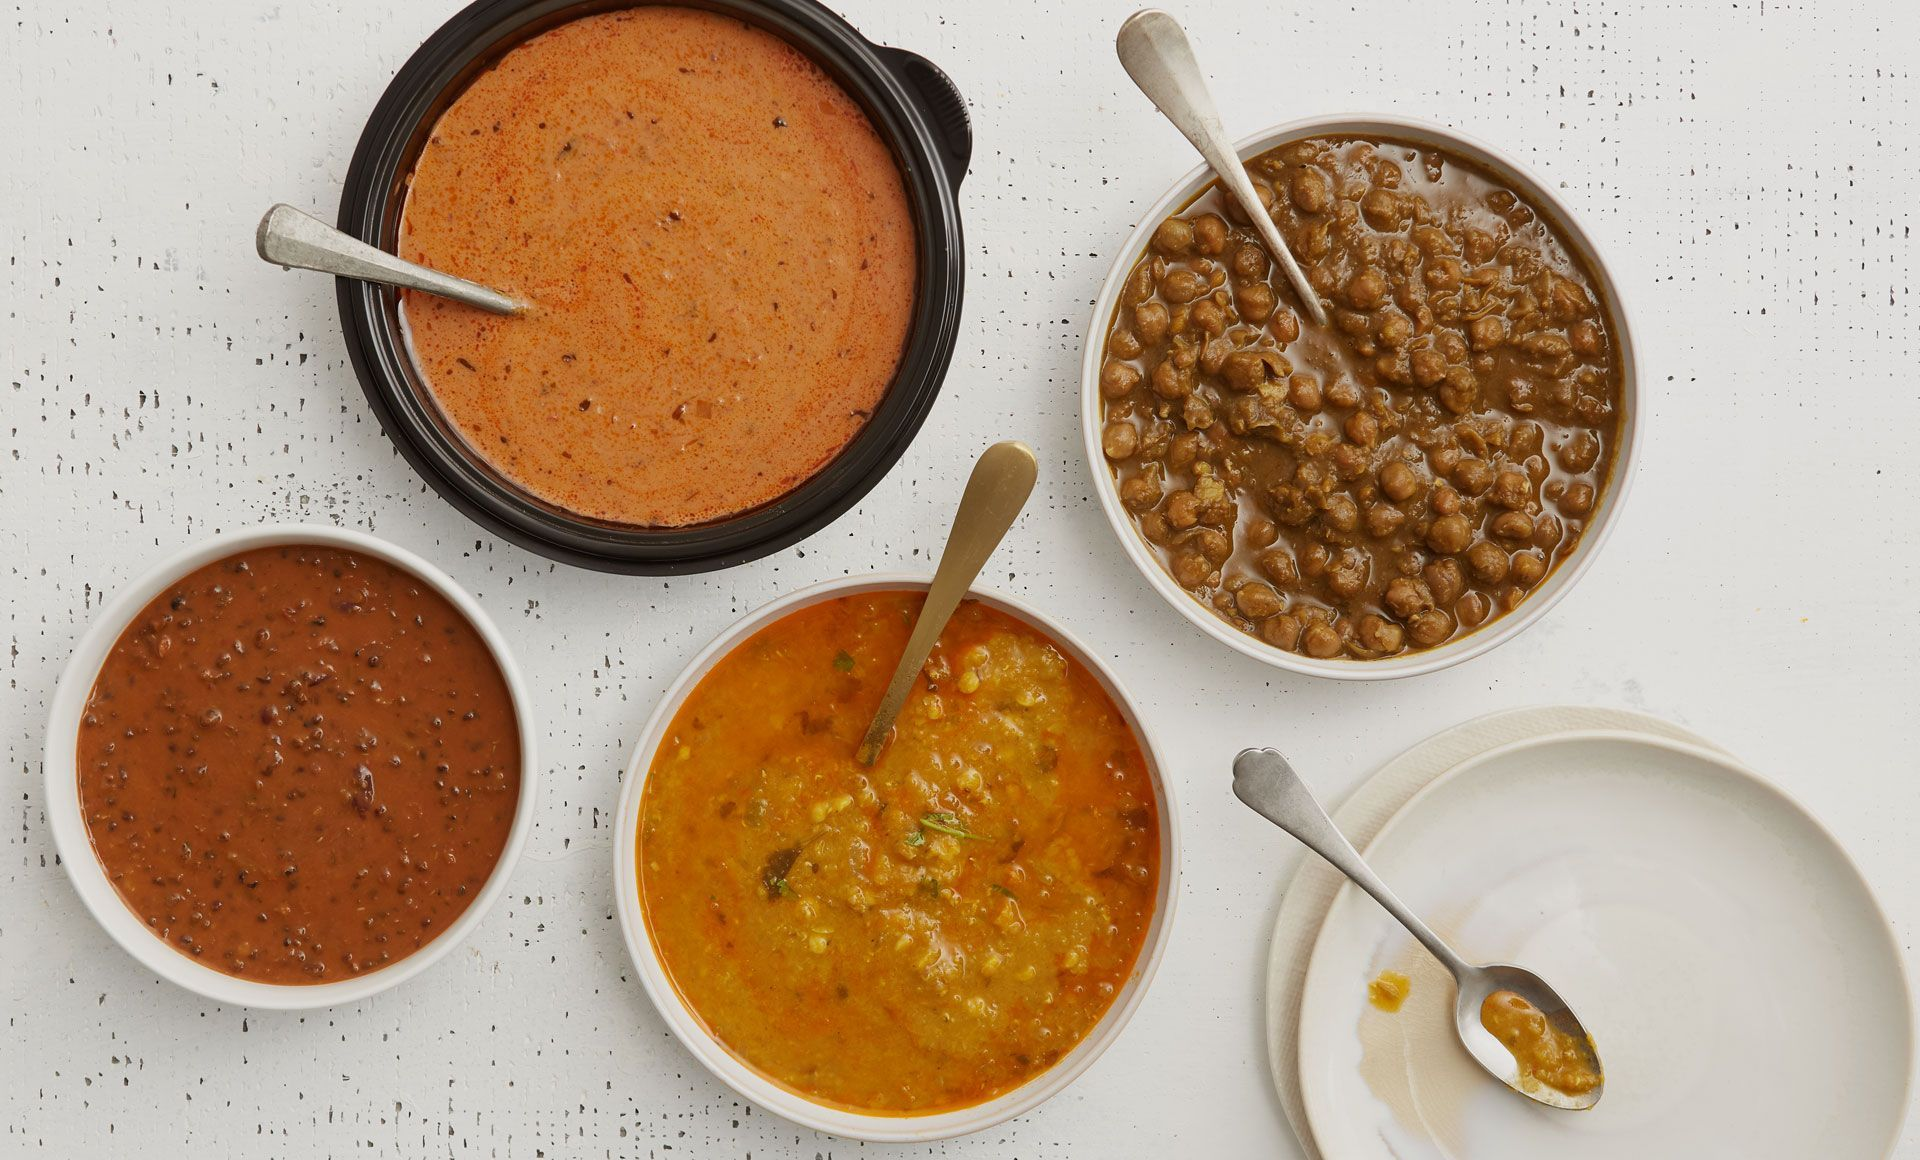 tikka masala, chickpea masala, black lentil daal and yellow lentil daal